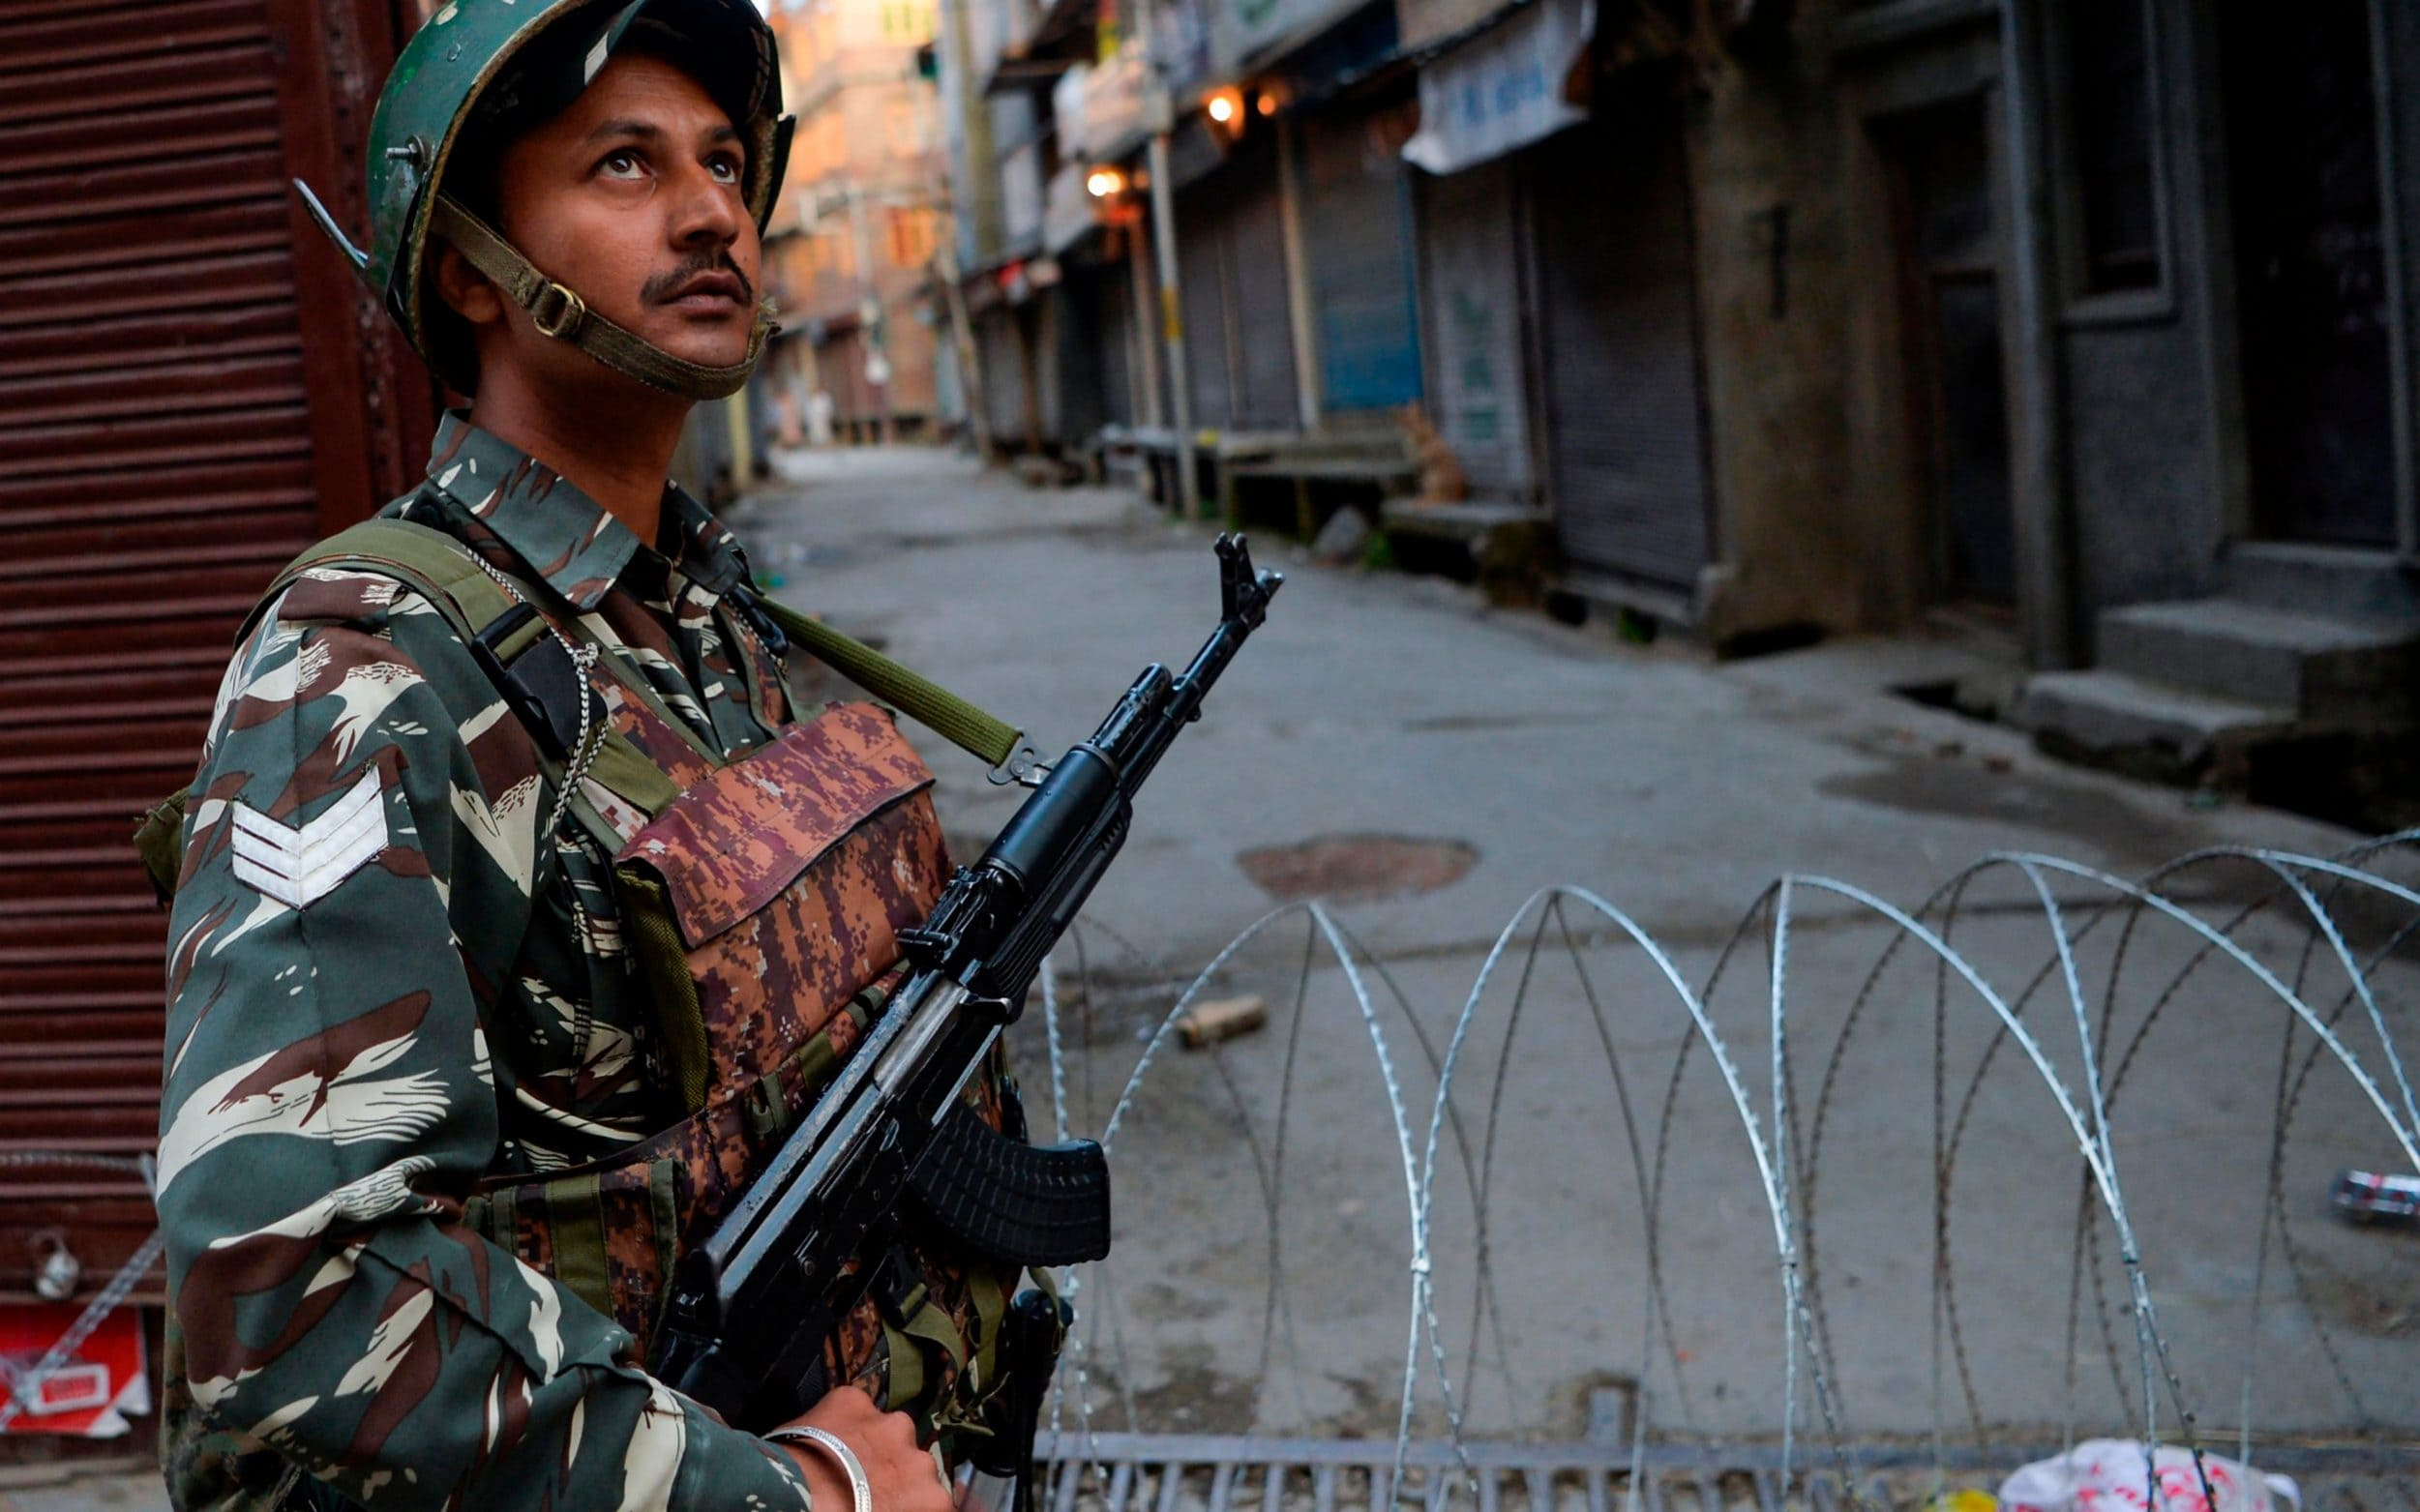 India promises to ease Kashmir curfew as Pakistan accuses New Delhi government of ethnic cleansing